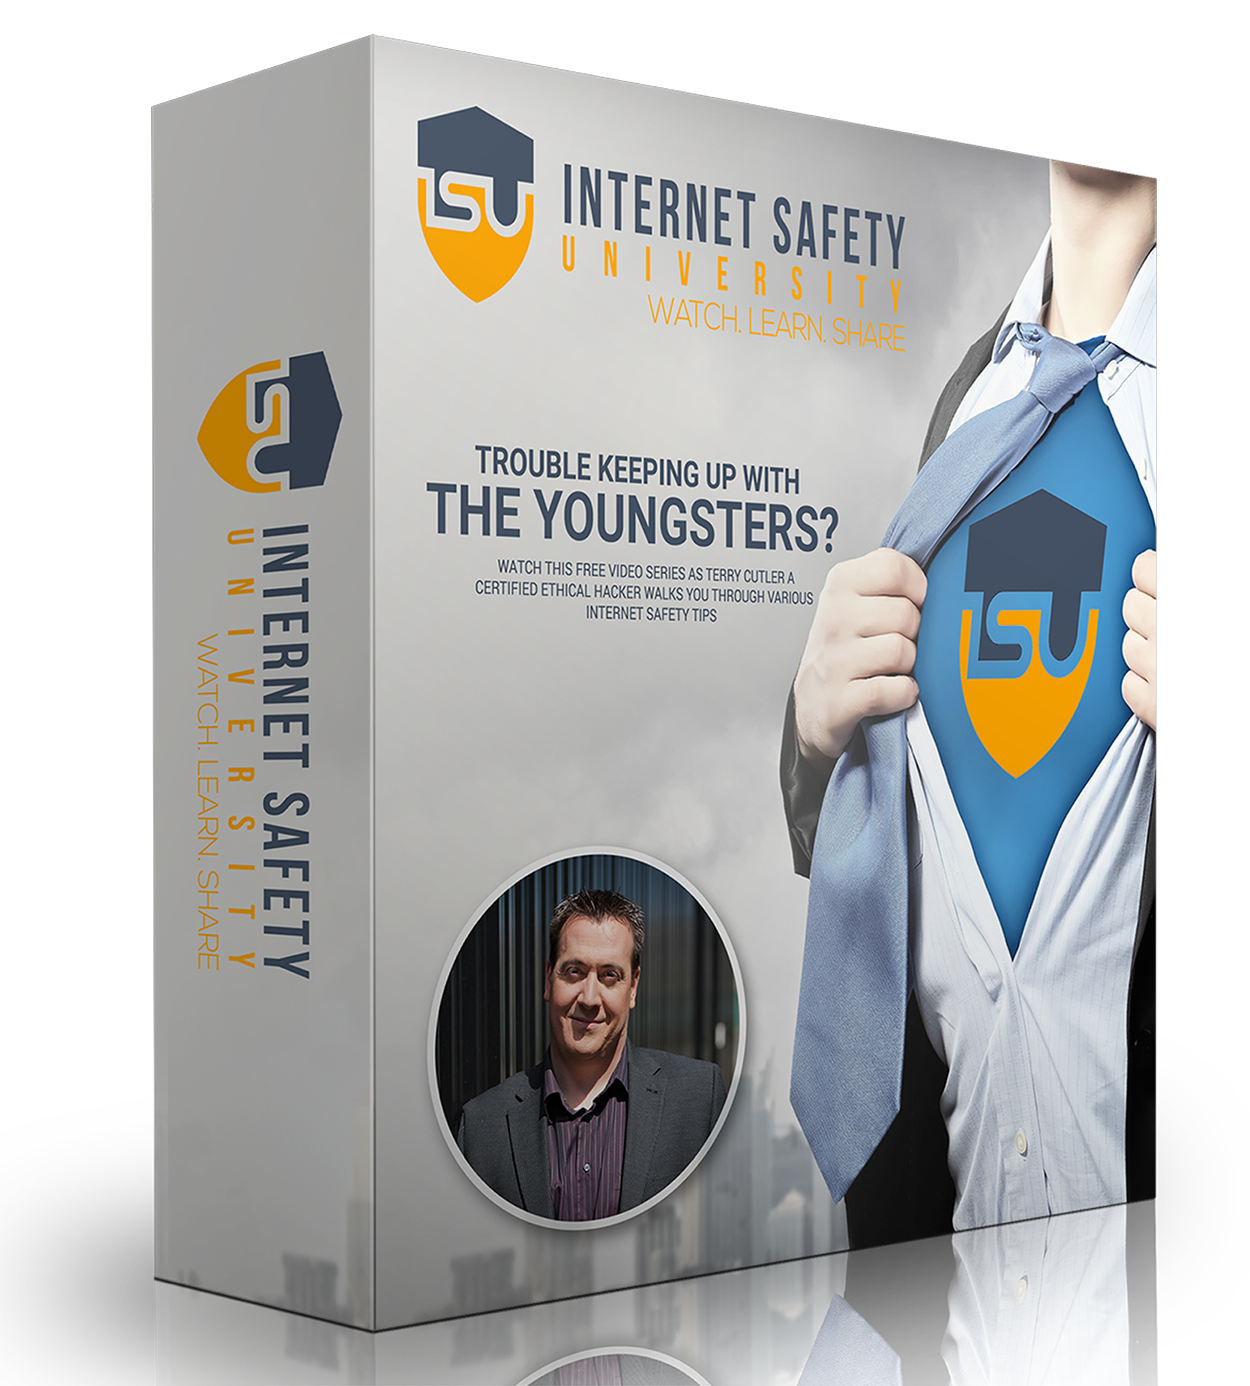 """Terry Cutler launches """"Insider secrets from an Ethical Hacker on Internet Safety"""" on Udemy.com"""